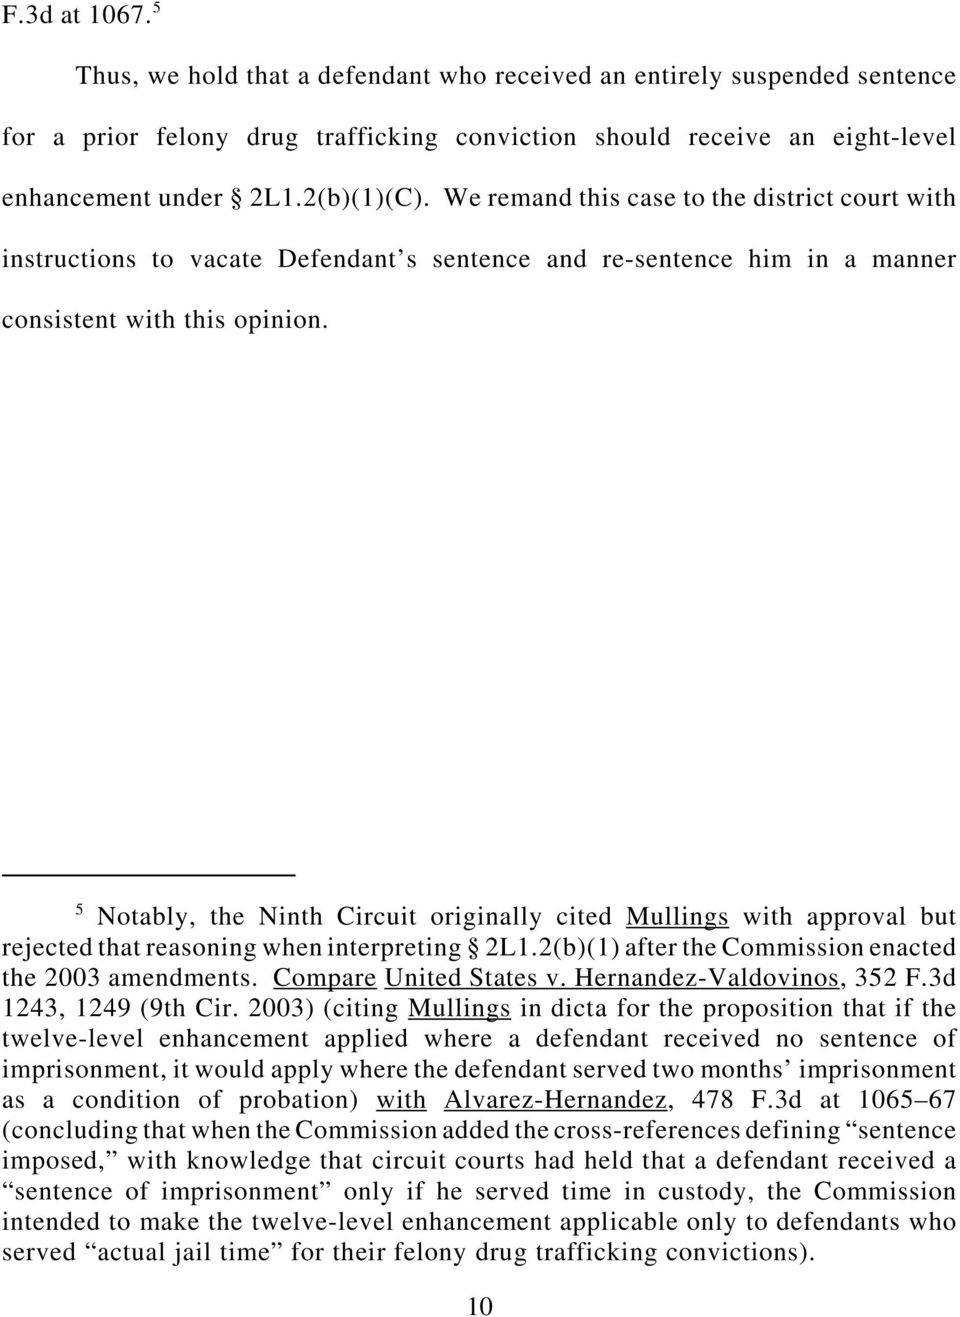 5 Notably, the Ninth Circuit originally cited Mullings with approval but rejected that reasoning when interpreting 2L1.2(b)(1) after the Commission enacted the 2003 amendments.